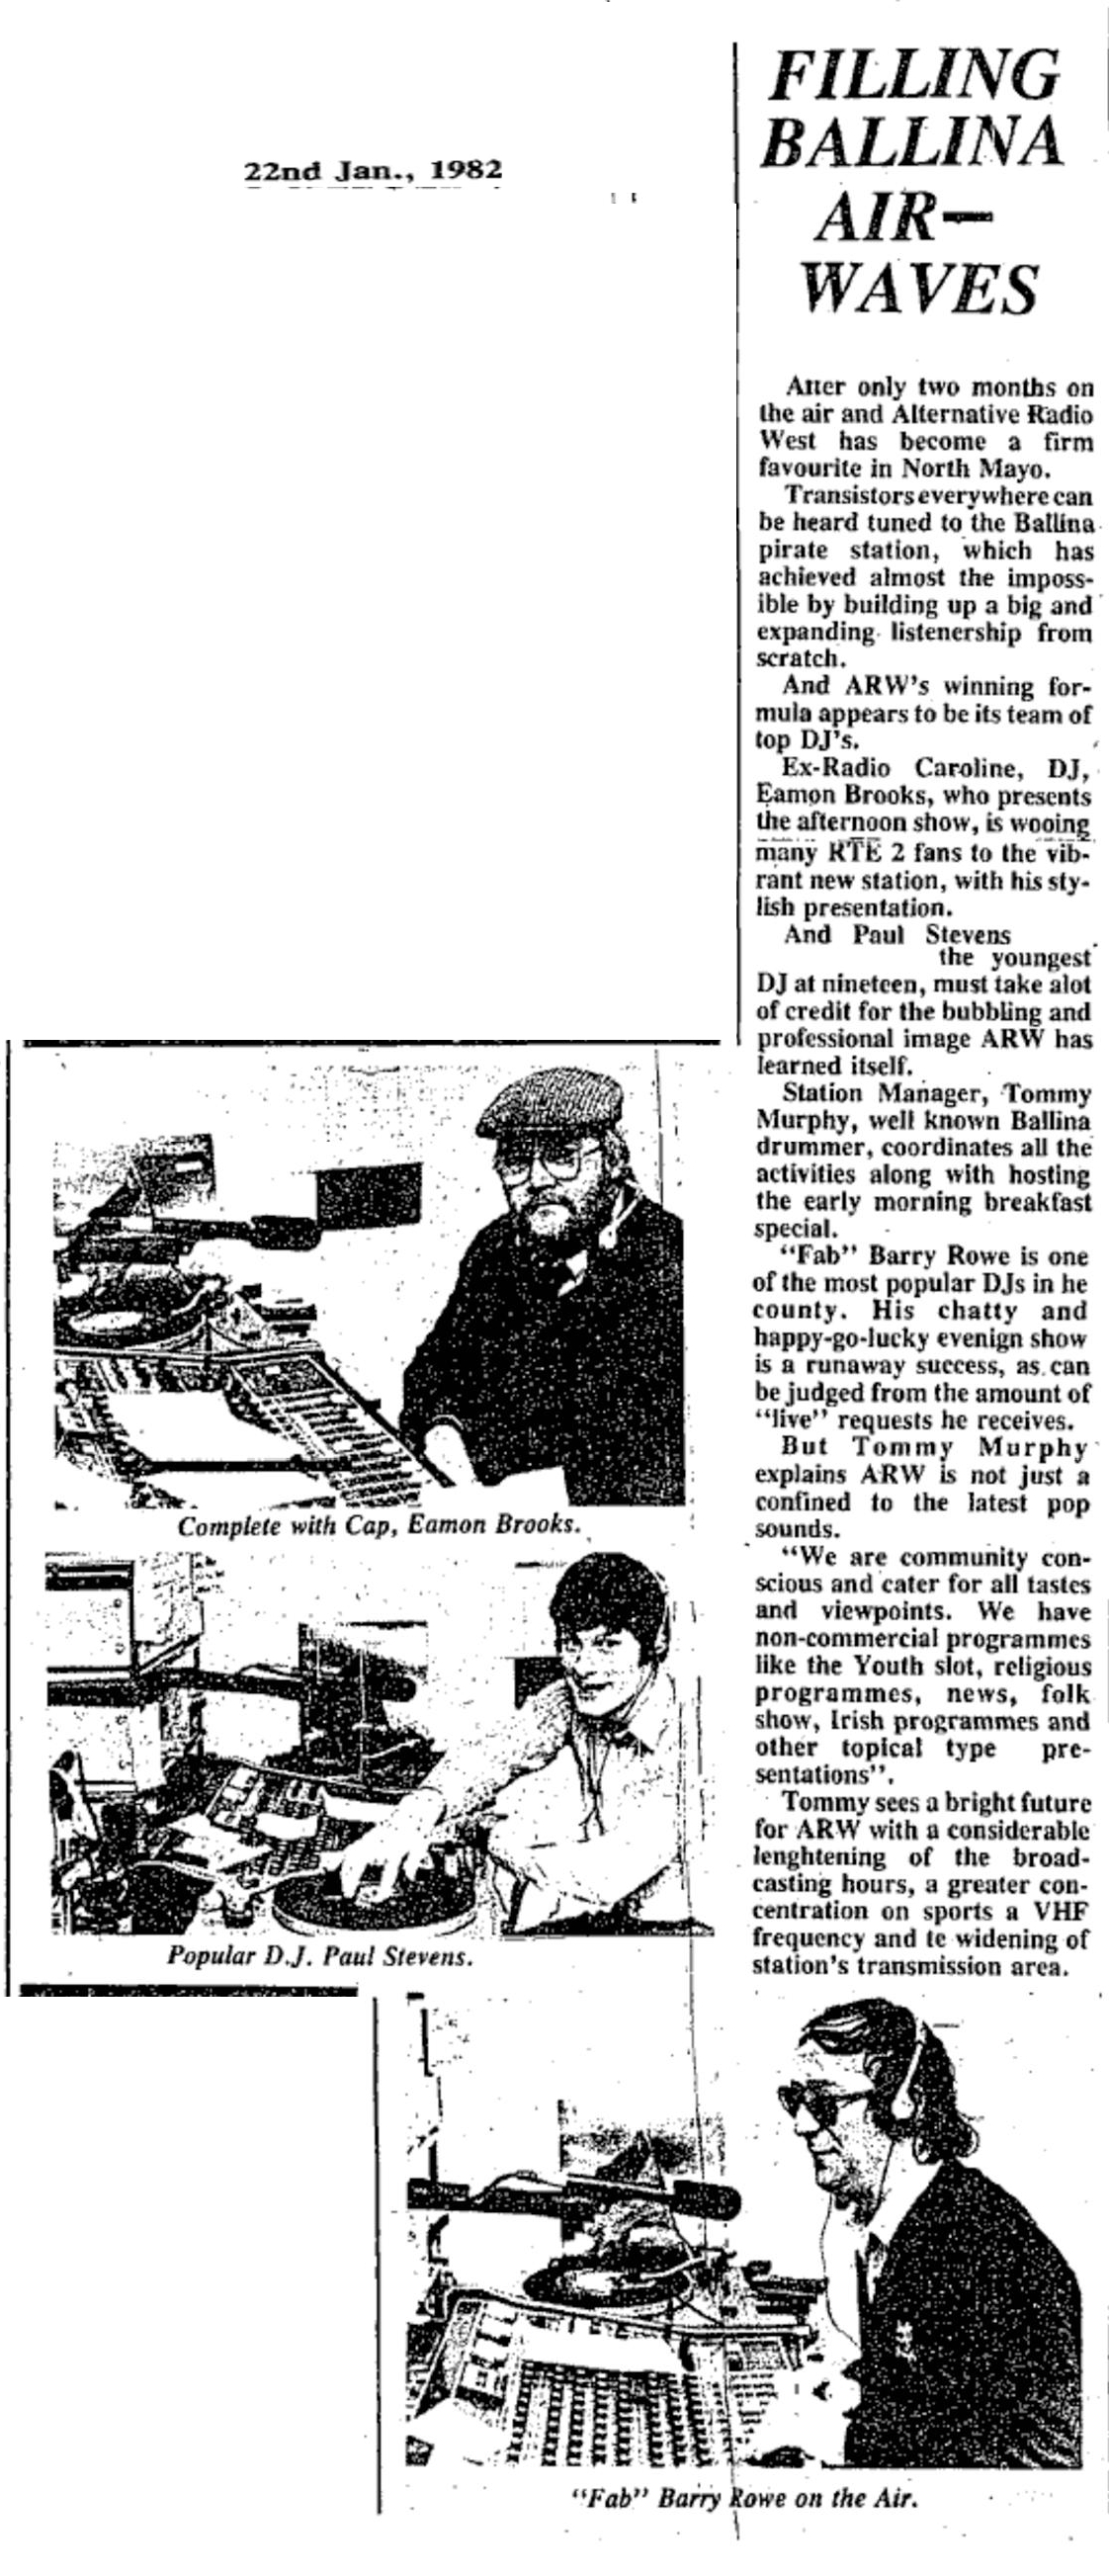 Filling Ballina airwaves was a newspaper headline dated January 22nd 1982